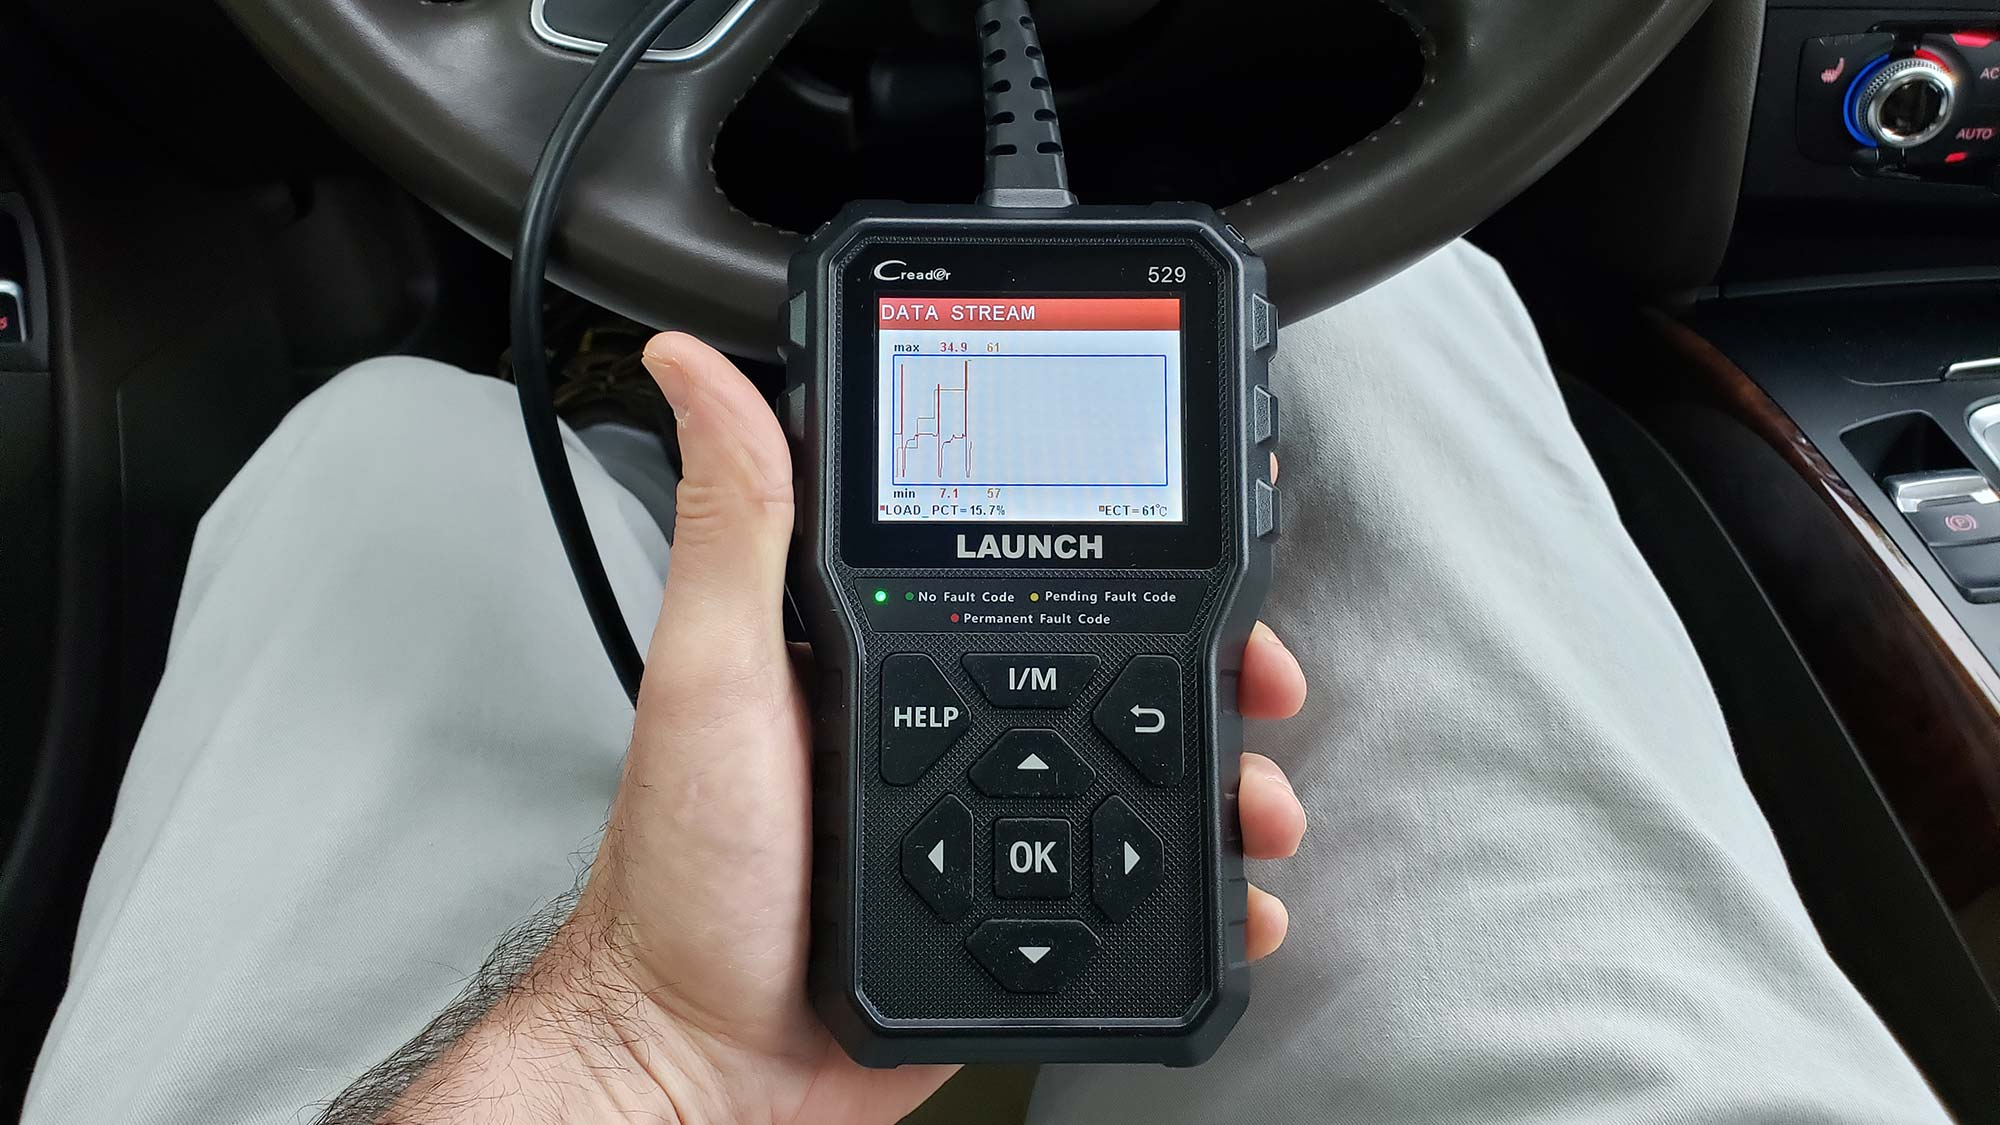 Best OBD2 scanners: Launch CR529 OBD2 Scanner